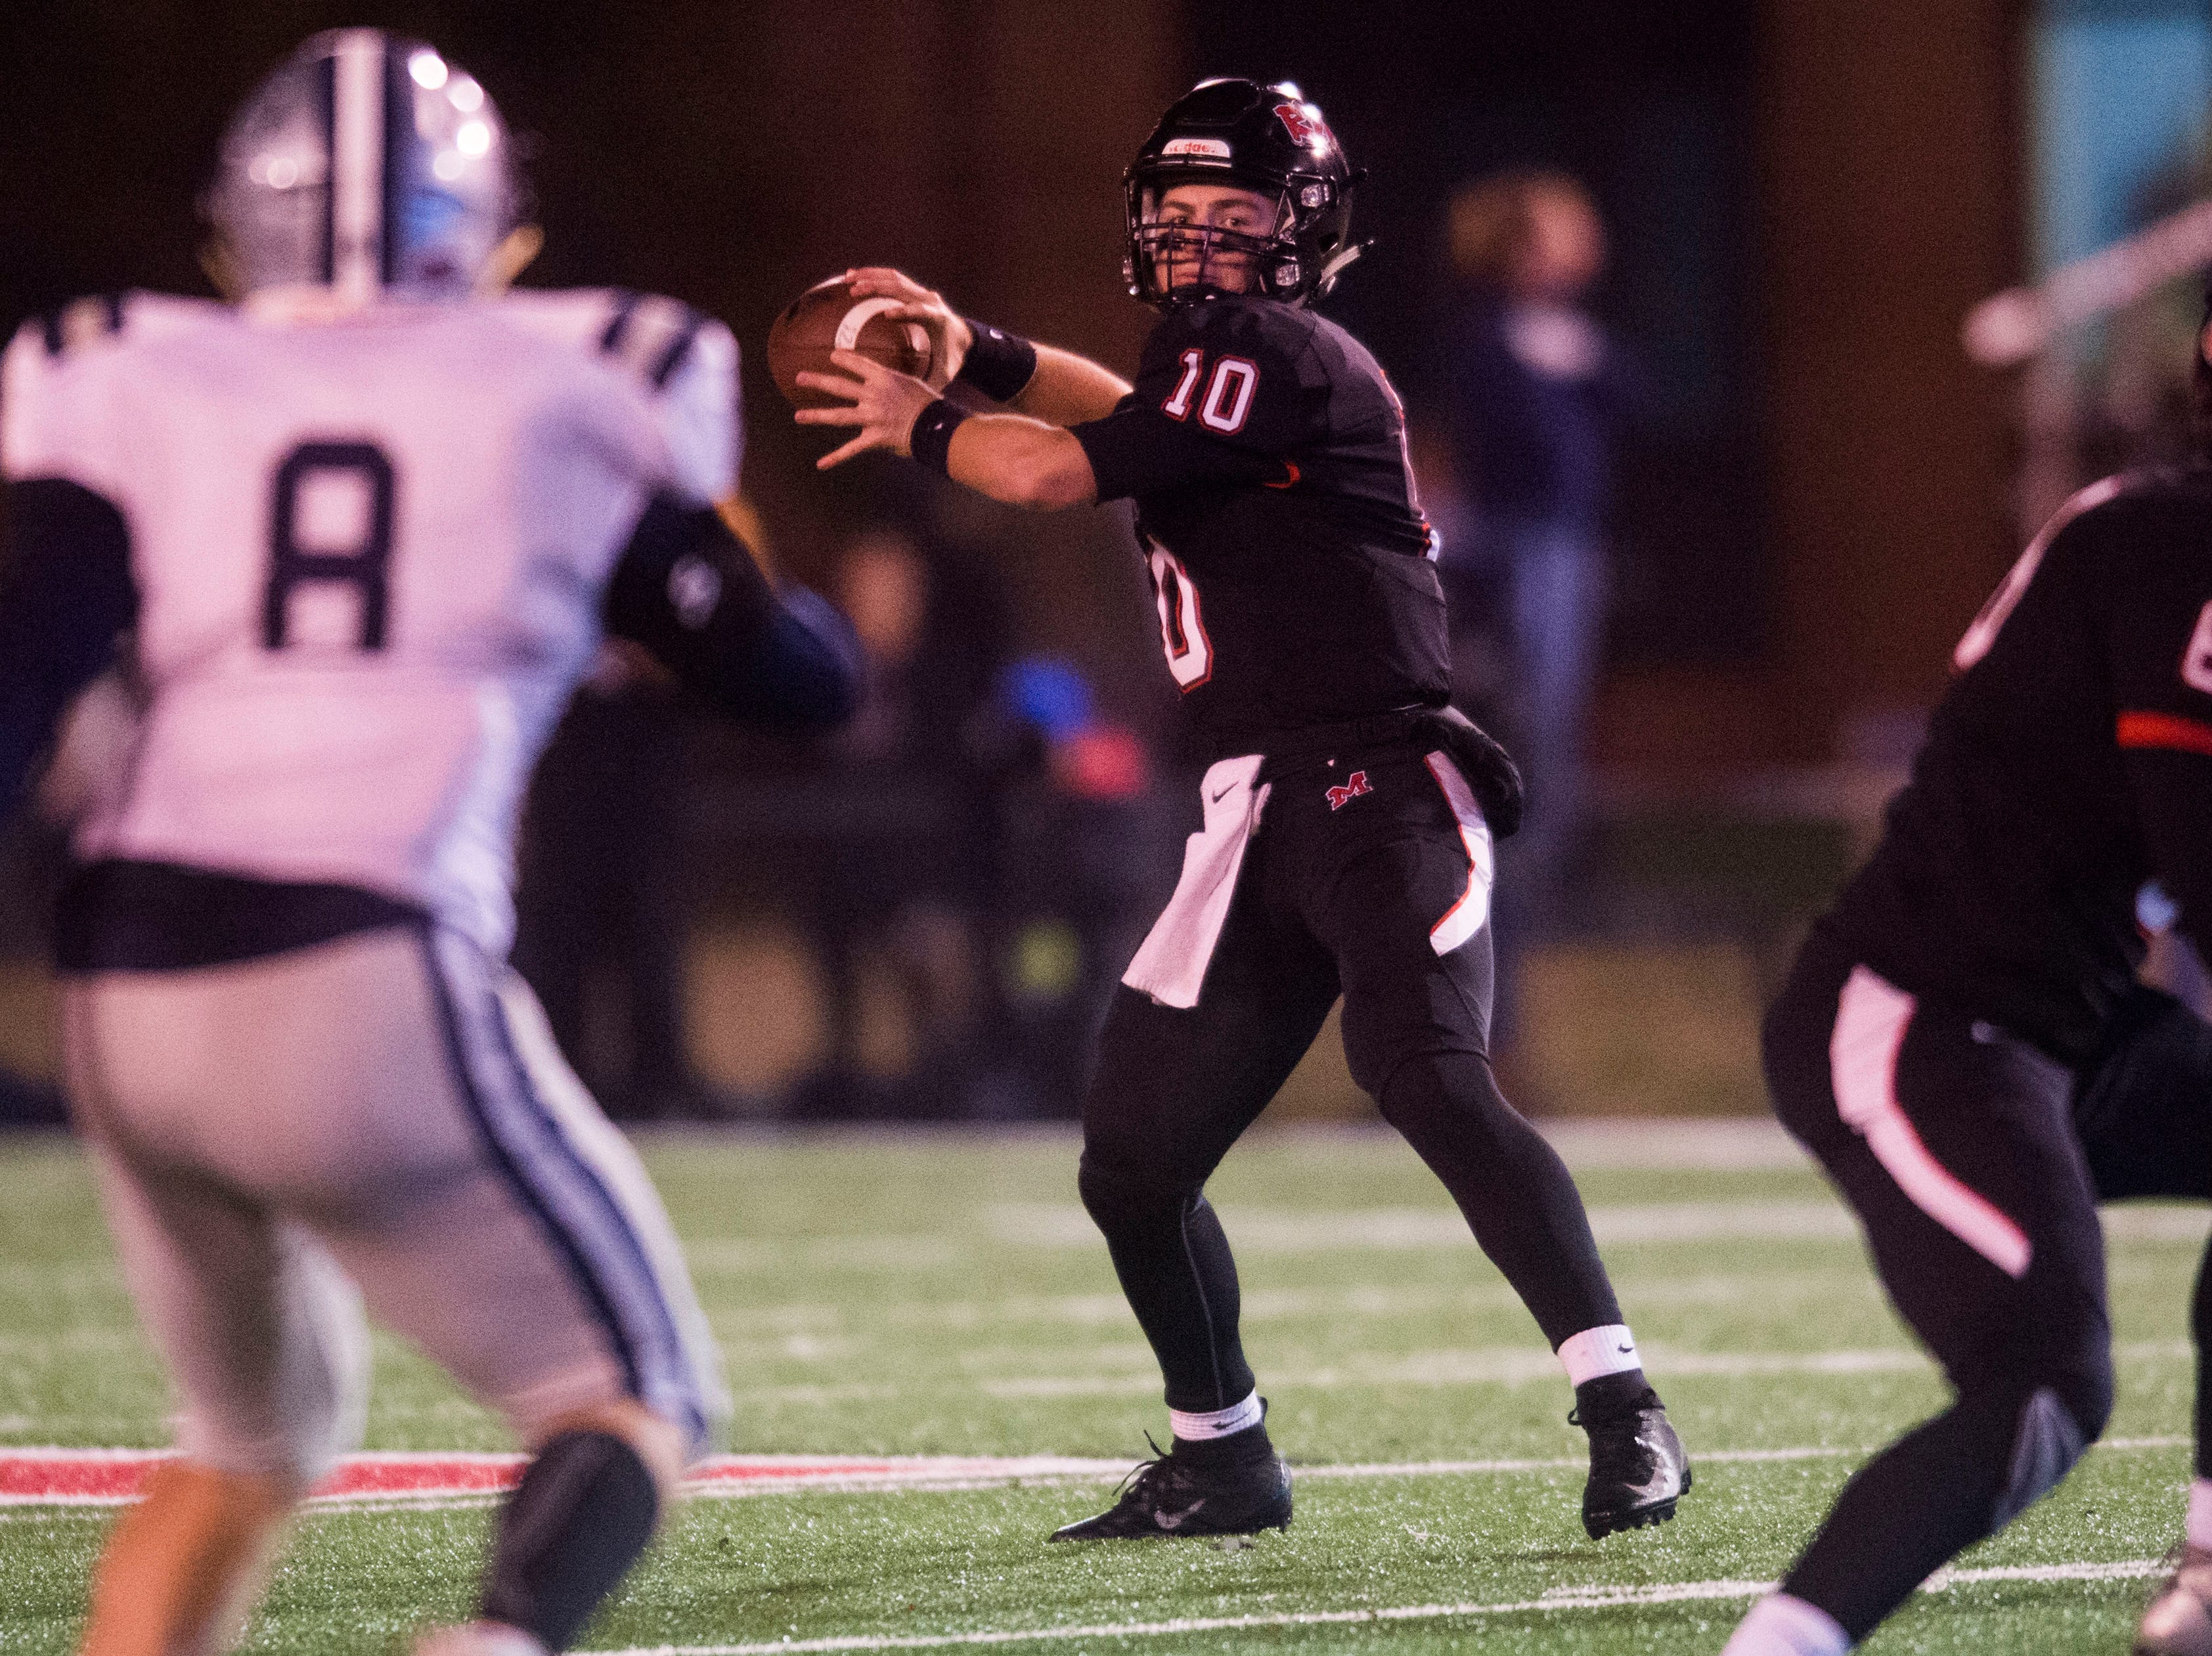 Maryville's Braden Carnes (10) throws the ball during a 6A quarterfinal game between Maryville and Farragut at Maryville Friday, Nov. 16, 2018. Maryville defeated Farragut 26-10.